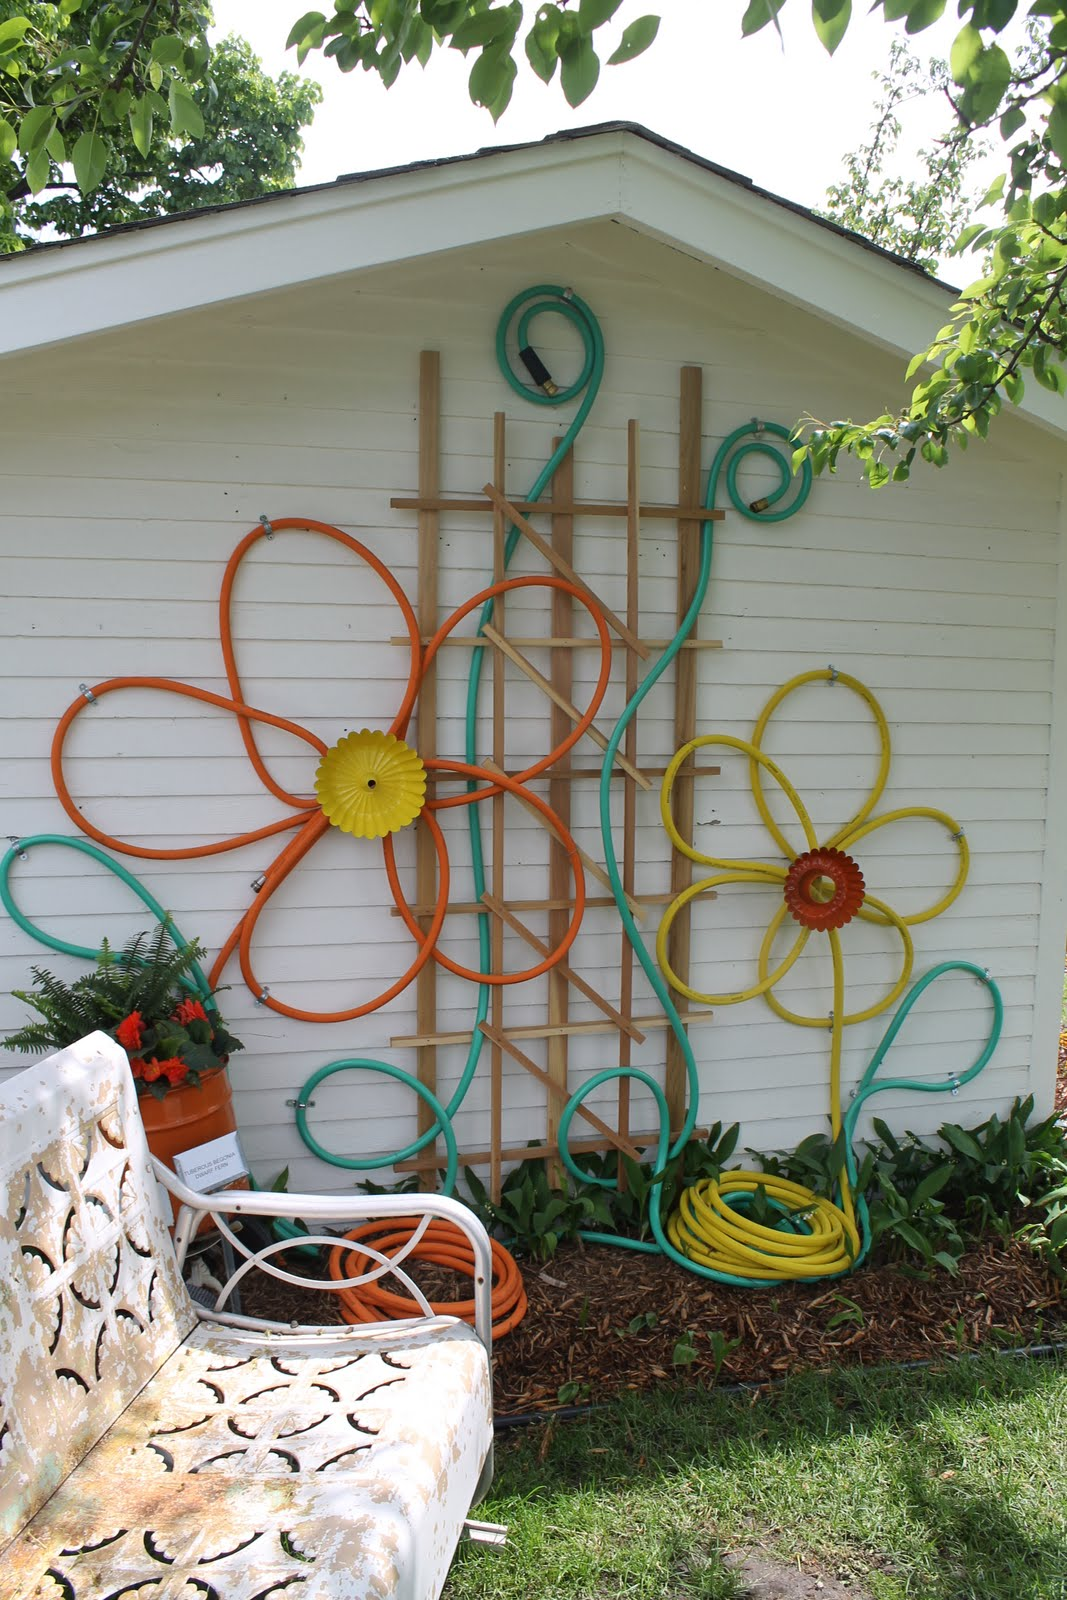 garden wall decoration ideas. Make flowers from hoses for outdoor house decor How To Beautify Your House  Outdoor Wall D cor Ideas